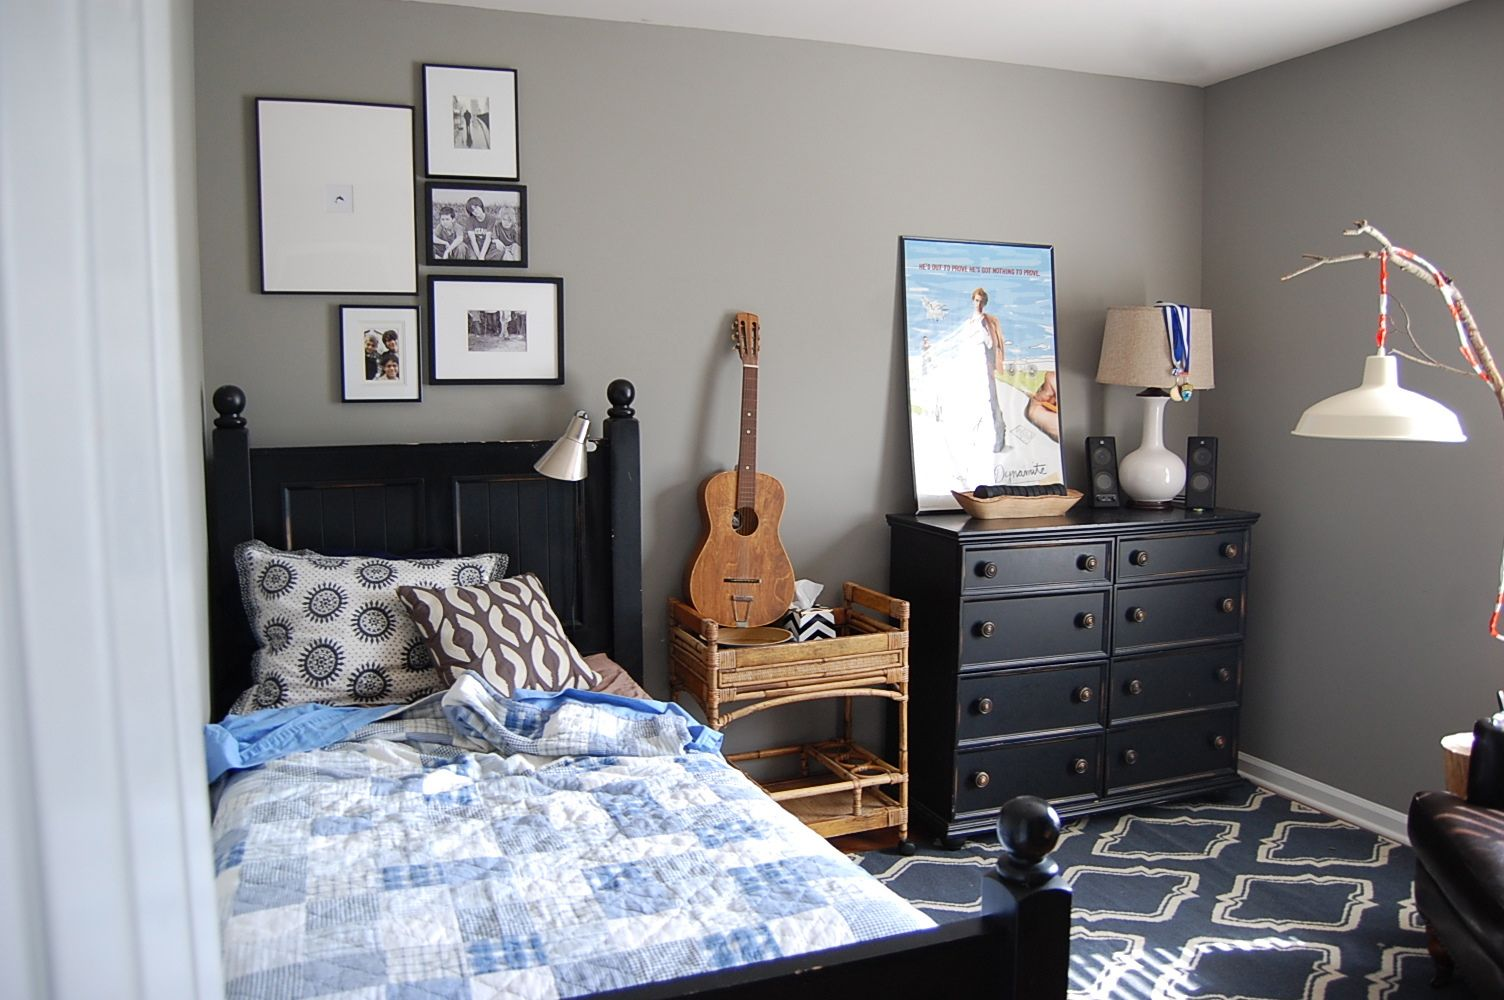 Teenage boys bedroom ideas - Cool And Inspiring Teen Boys Room Ideas Charming Grey Teen Boys Room Ideas With Recycled Door Headboard And Wooden Bedside Table Also Black Paint Dresser